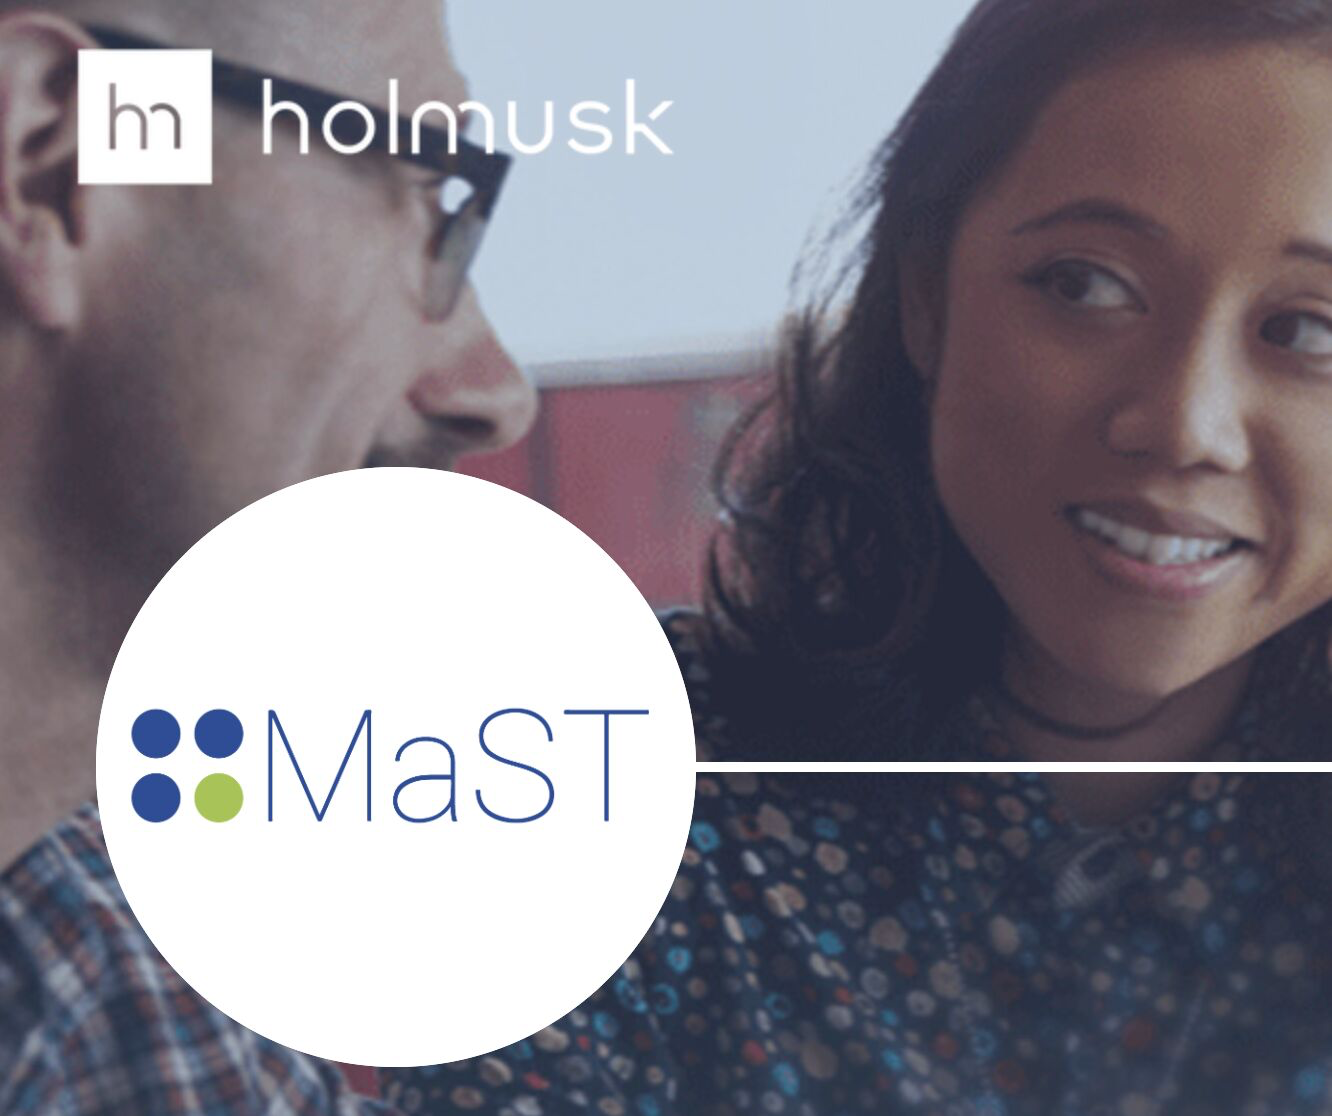 Holmusk Acquires Mental Health Analytics Provider Otsuka Health Solutions to Expand its Footprint in the UK